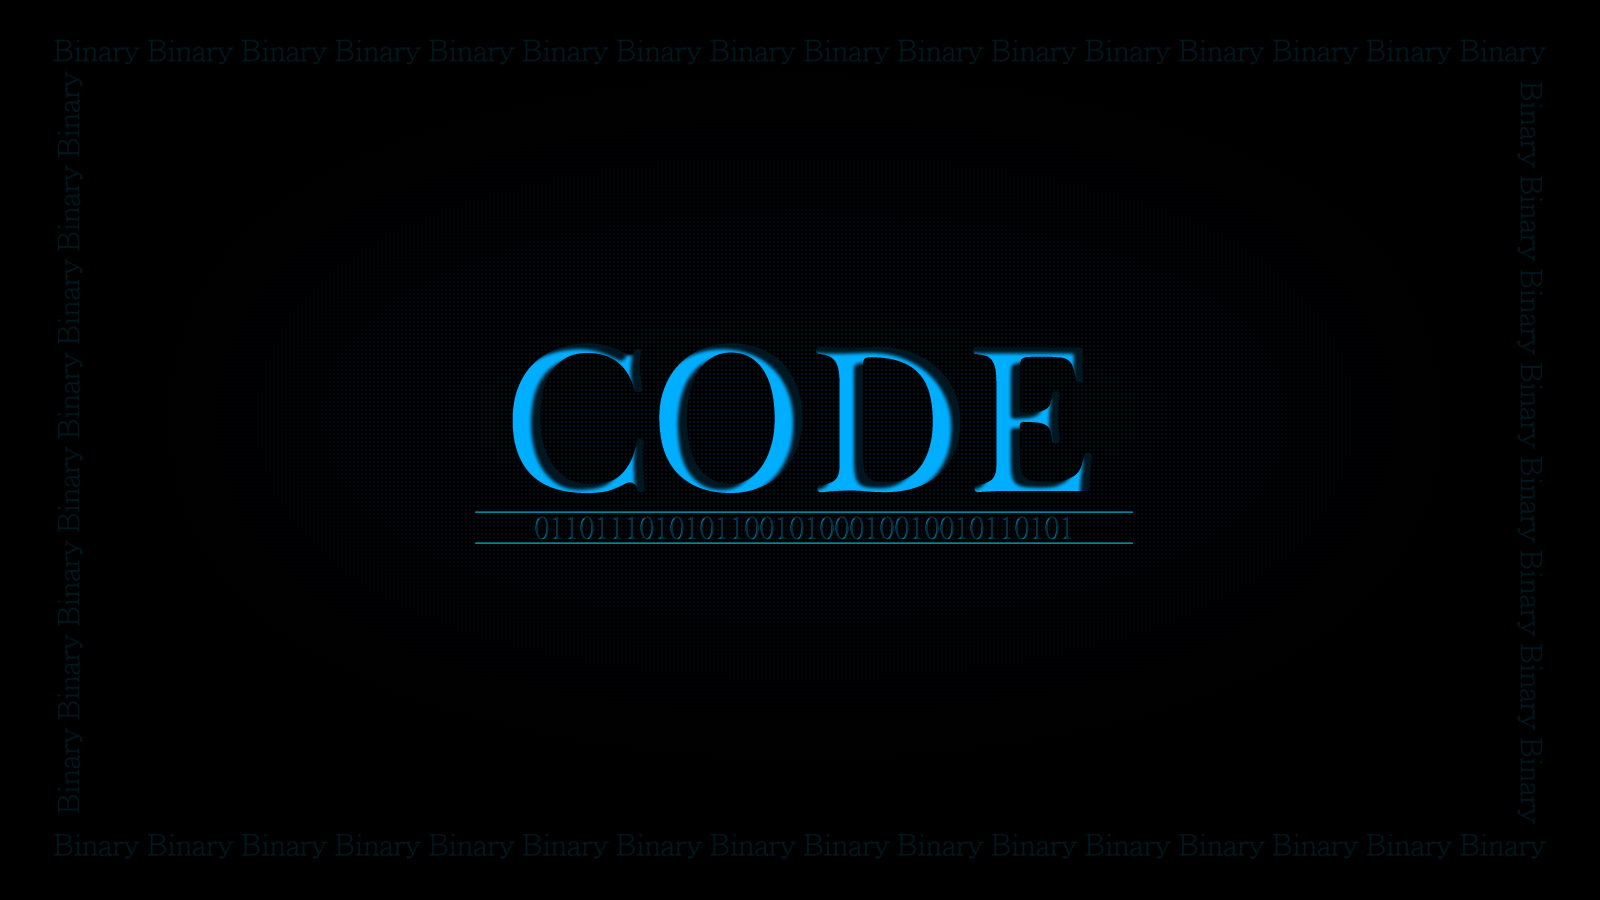 coder wallpapers hd